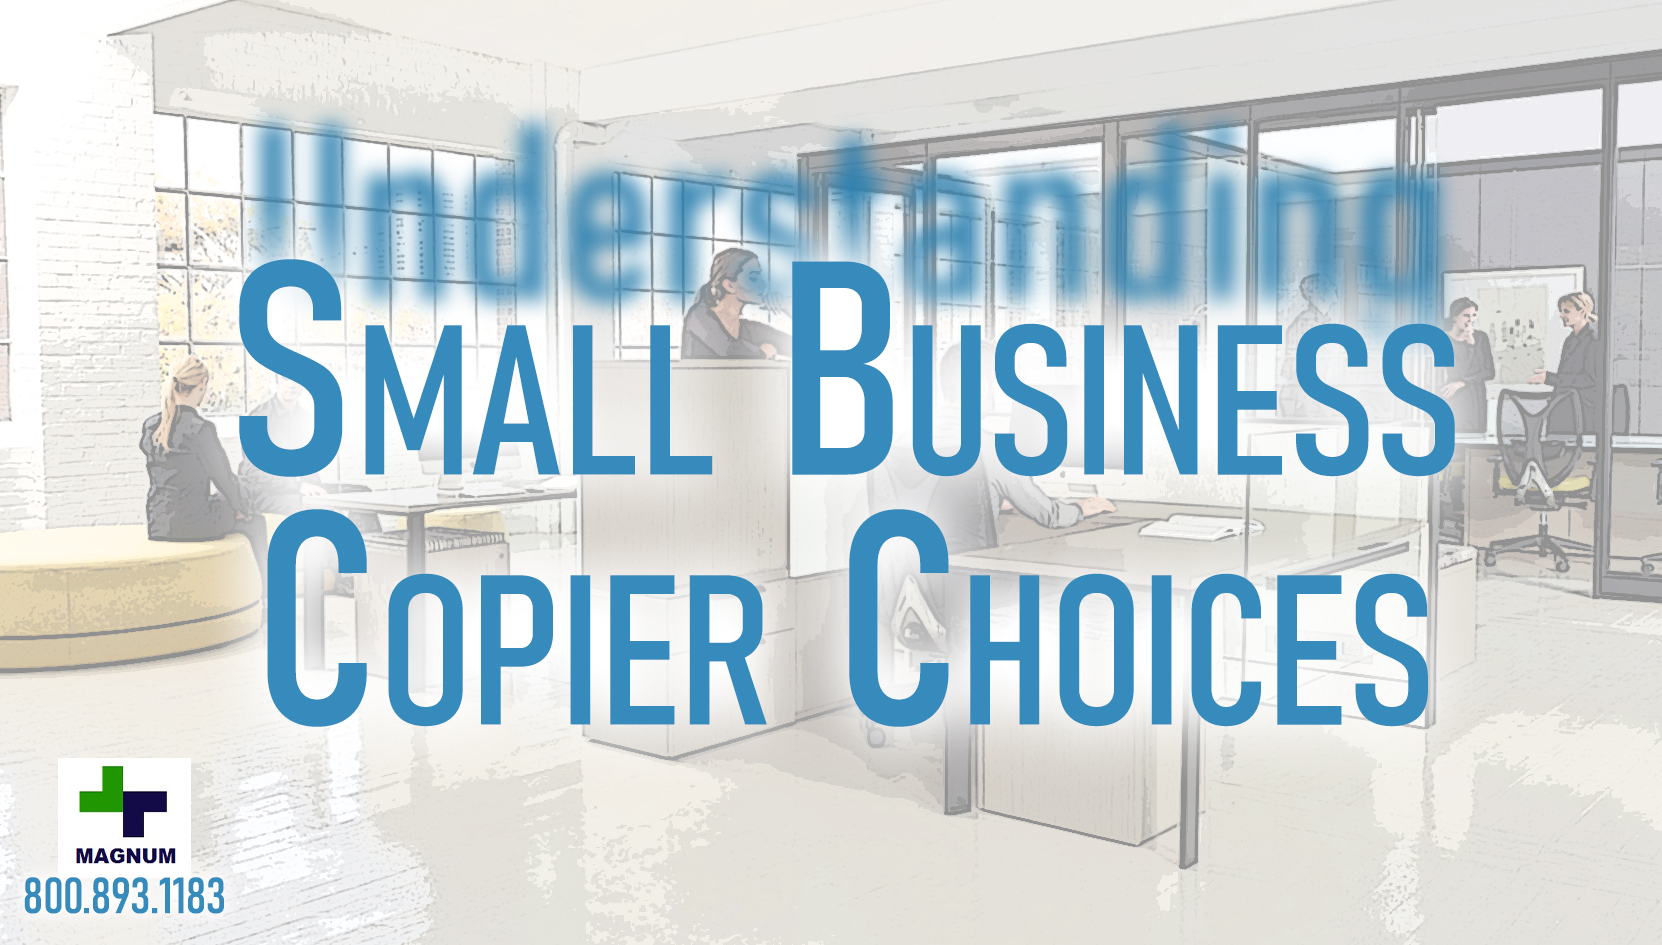 Should You Small Business Purchase or Lease a Digital Copier?